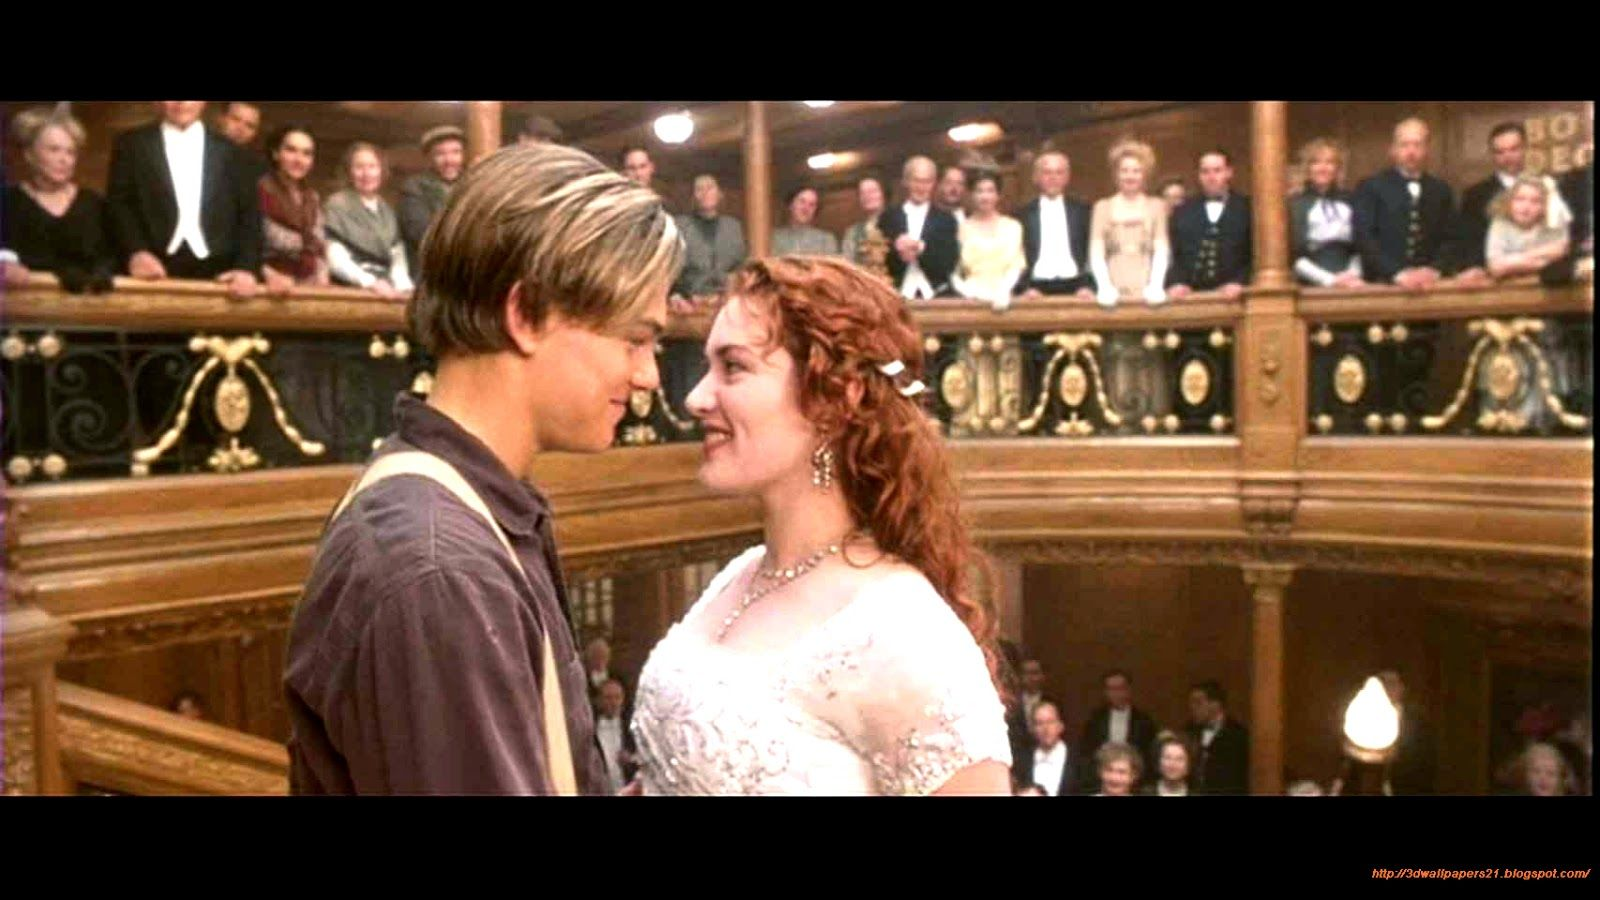 titanic movie images free movie wallpapers download titanic | hd